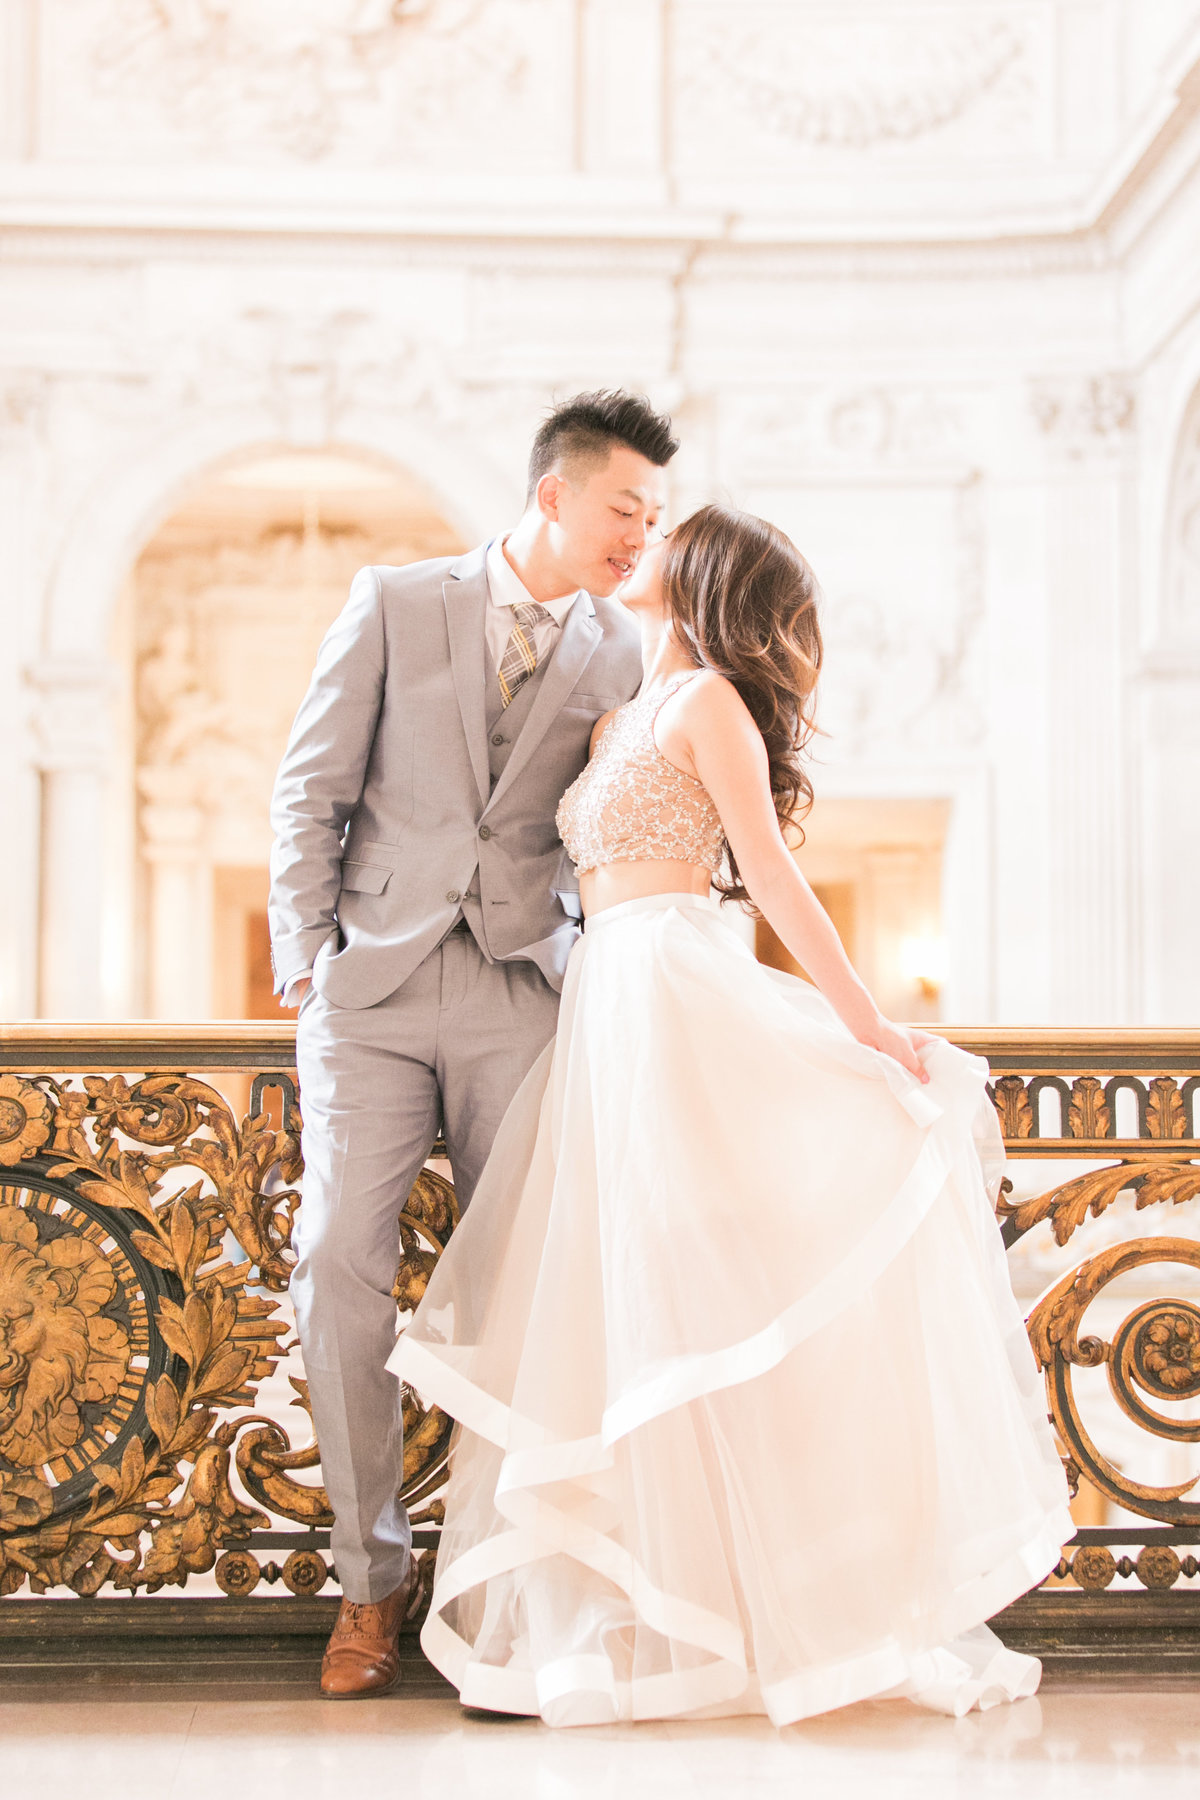 Romantic Wedding Photos SF